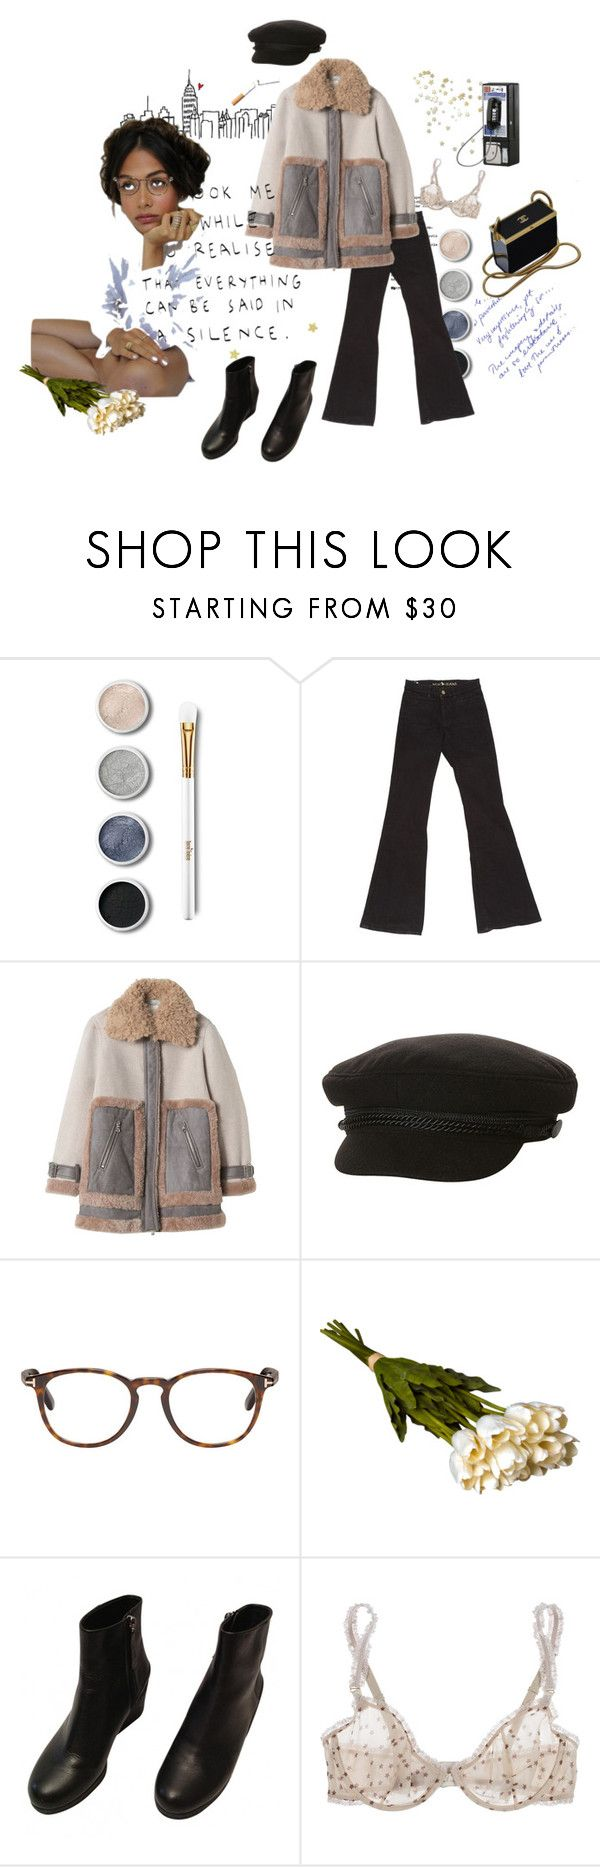 """""""silence"""" by flowerchild710 ❤ liked on Polyvore featuring Terre Mère, M.i.h Jeans, Rebecca Taylor, Billabong, Tom Ford, Crate and Barrel, Jil Sander, STELLA McCARTNEY and Chanel"""